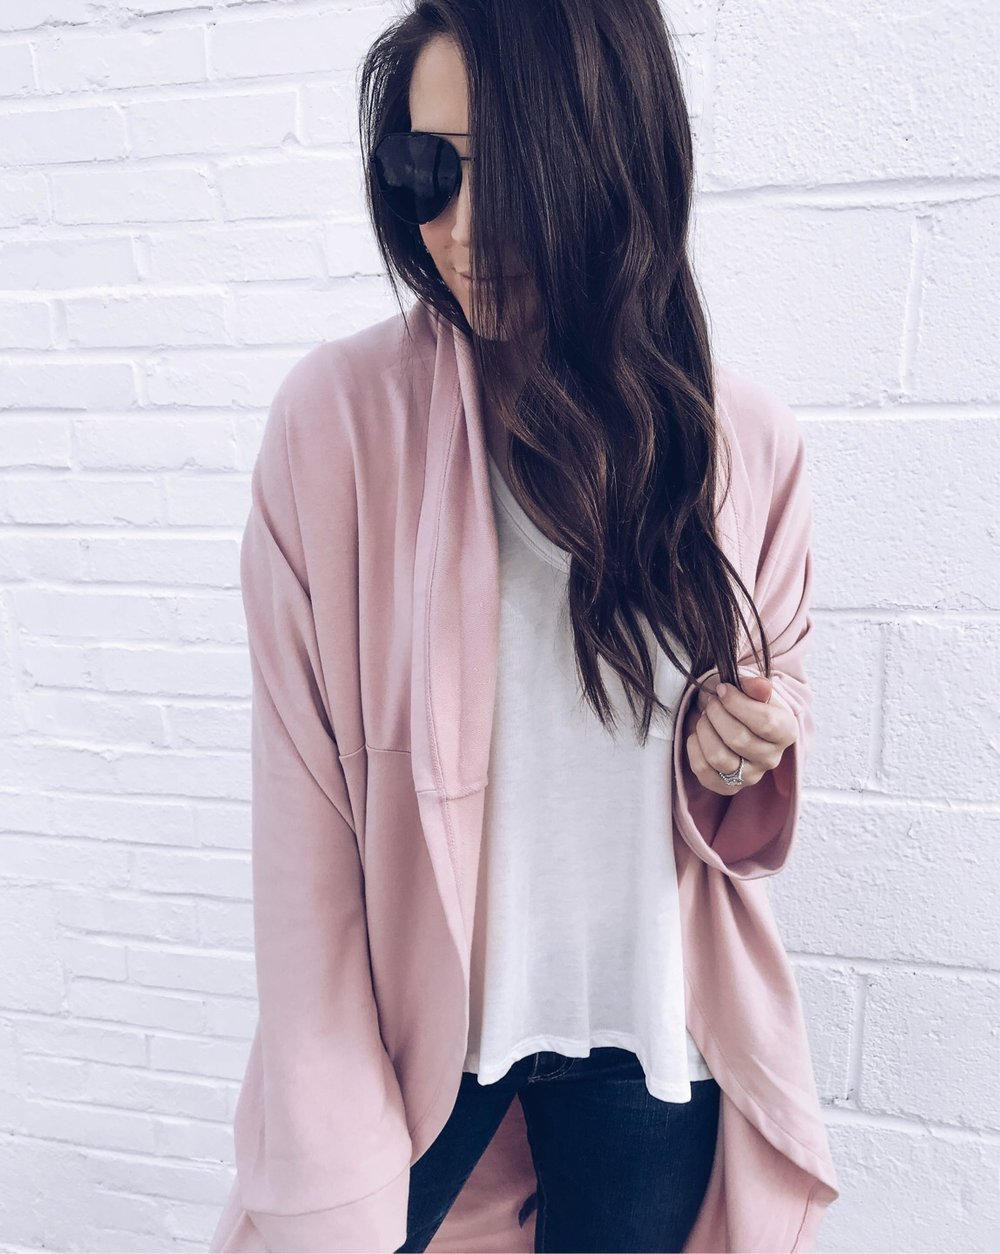 Instagram Round Up | Pine Barren Beauty | best cardigan for the spring transition, blush cardigan, basic white tee, outfit of the day